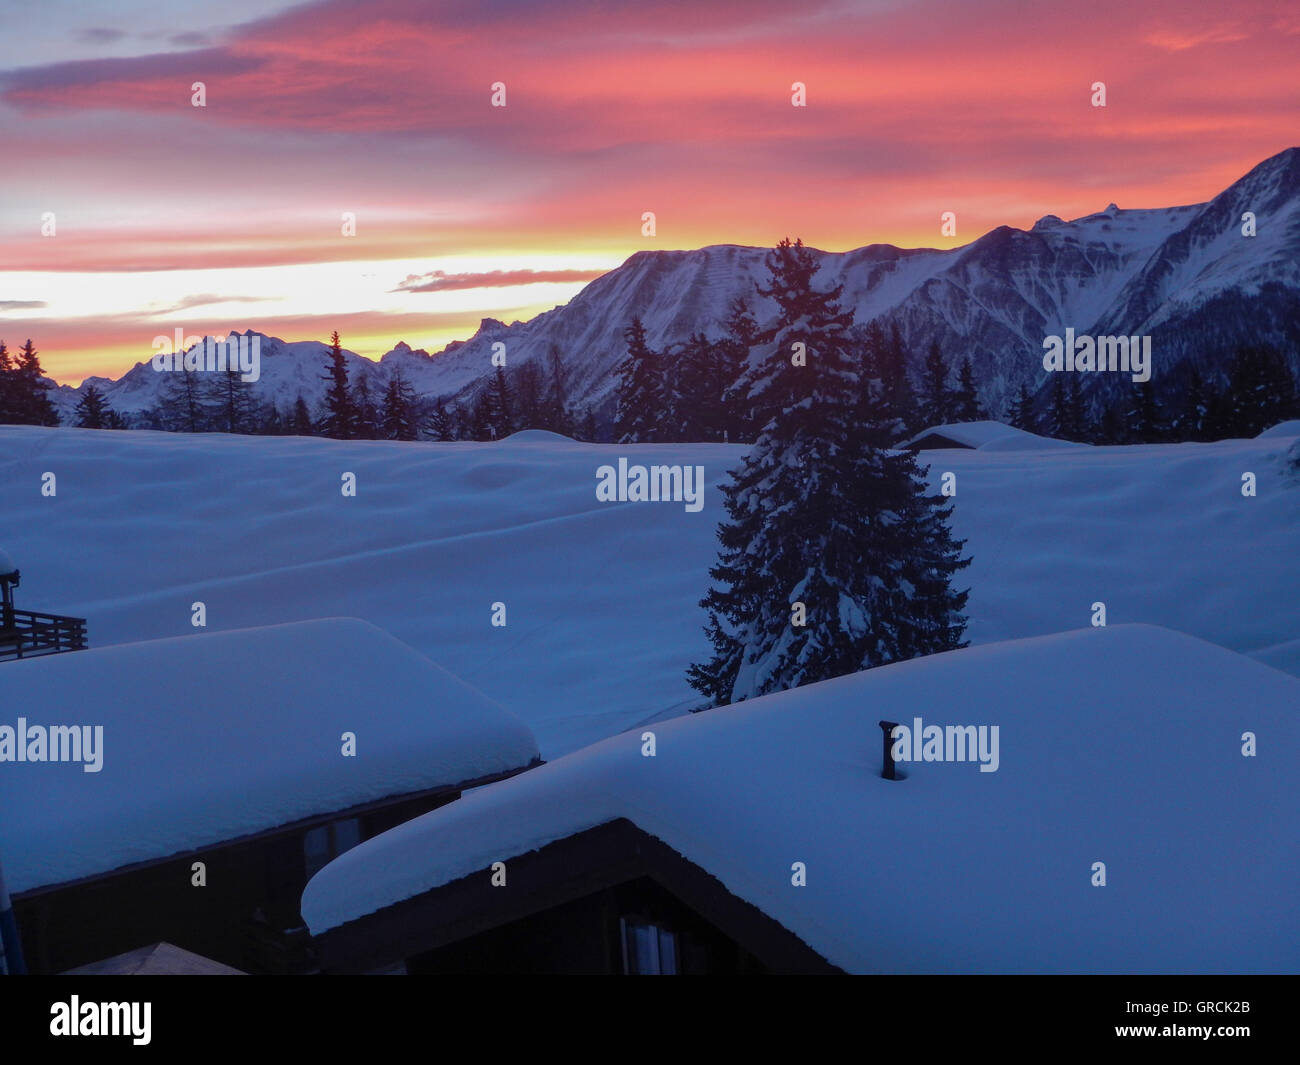 Dawn. View Over Snowcovered Roofs Of Chalets To The Mountains. Sky Orange Pink Colored - Stock Image